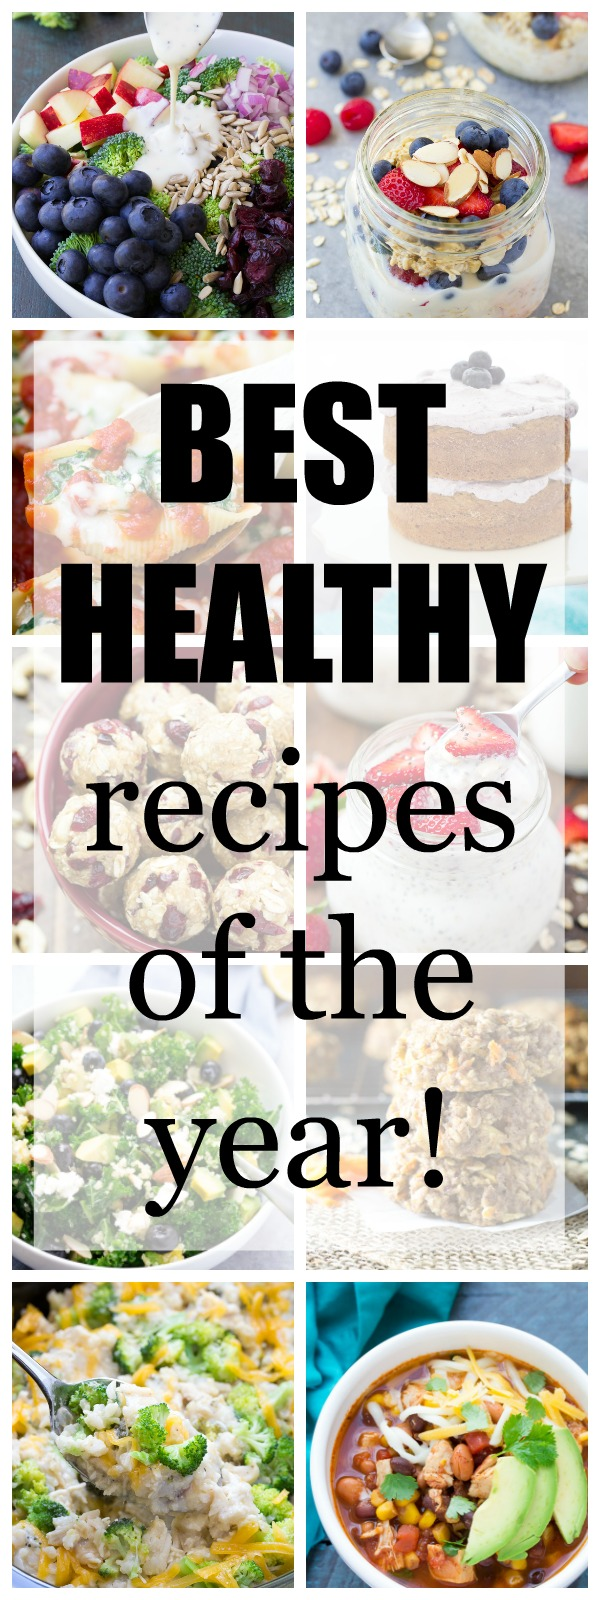 The BEST healthy recipes of the year! Slow cooker, salads, overnight oats, breakfast cookies and more! | www.kristineskitchenblog.com